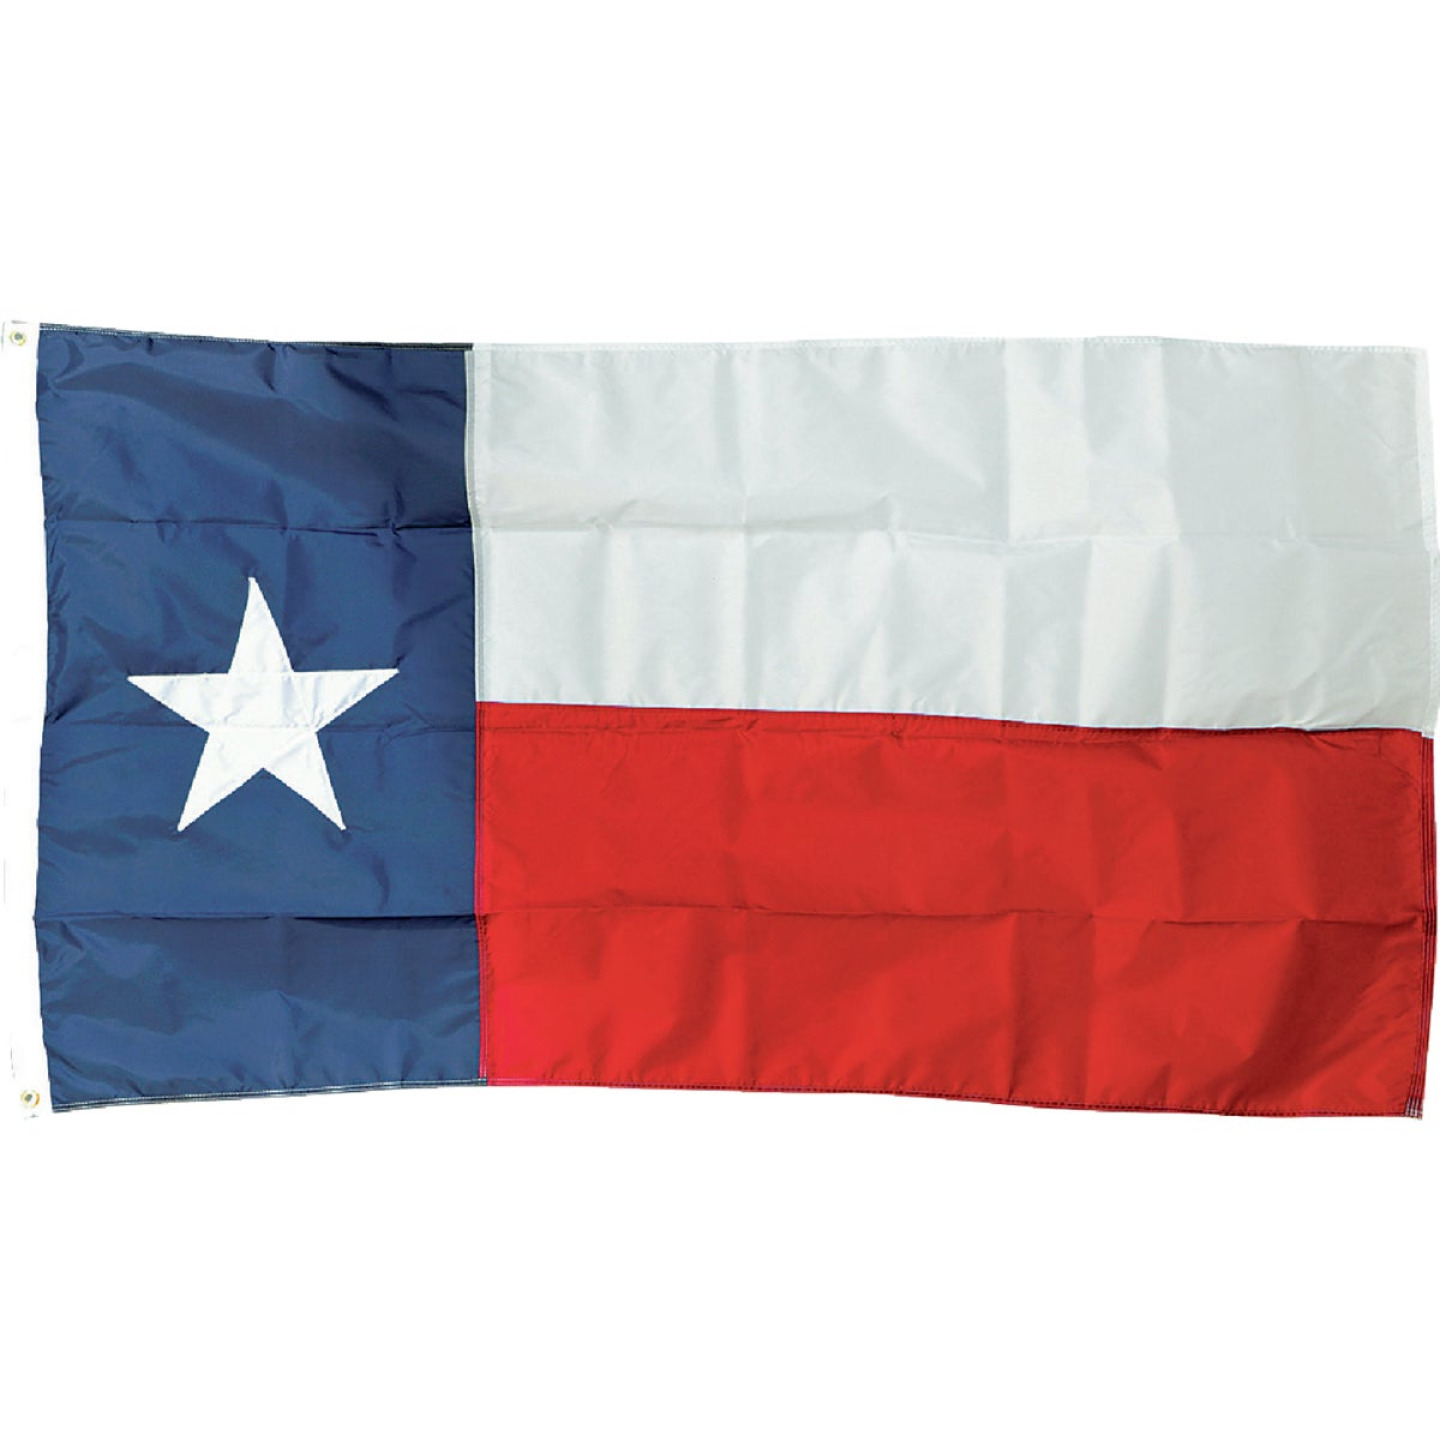 Valley Forge 3 Ft. x 5 Ft. Nylon Texas State Flag Image 1